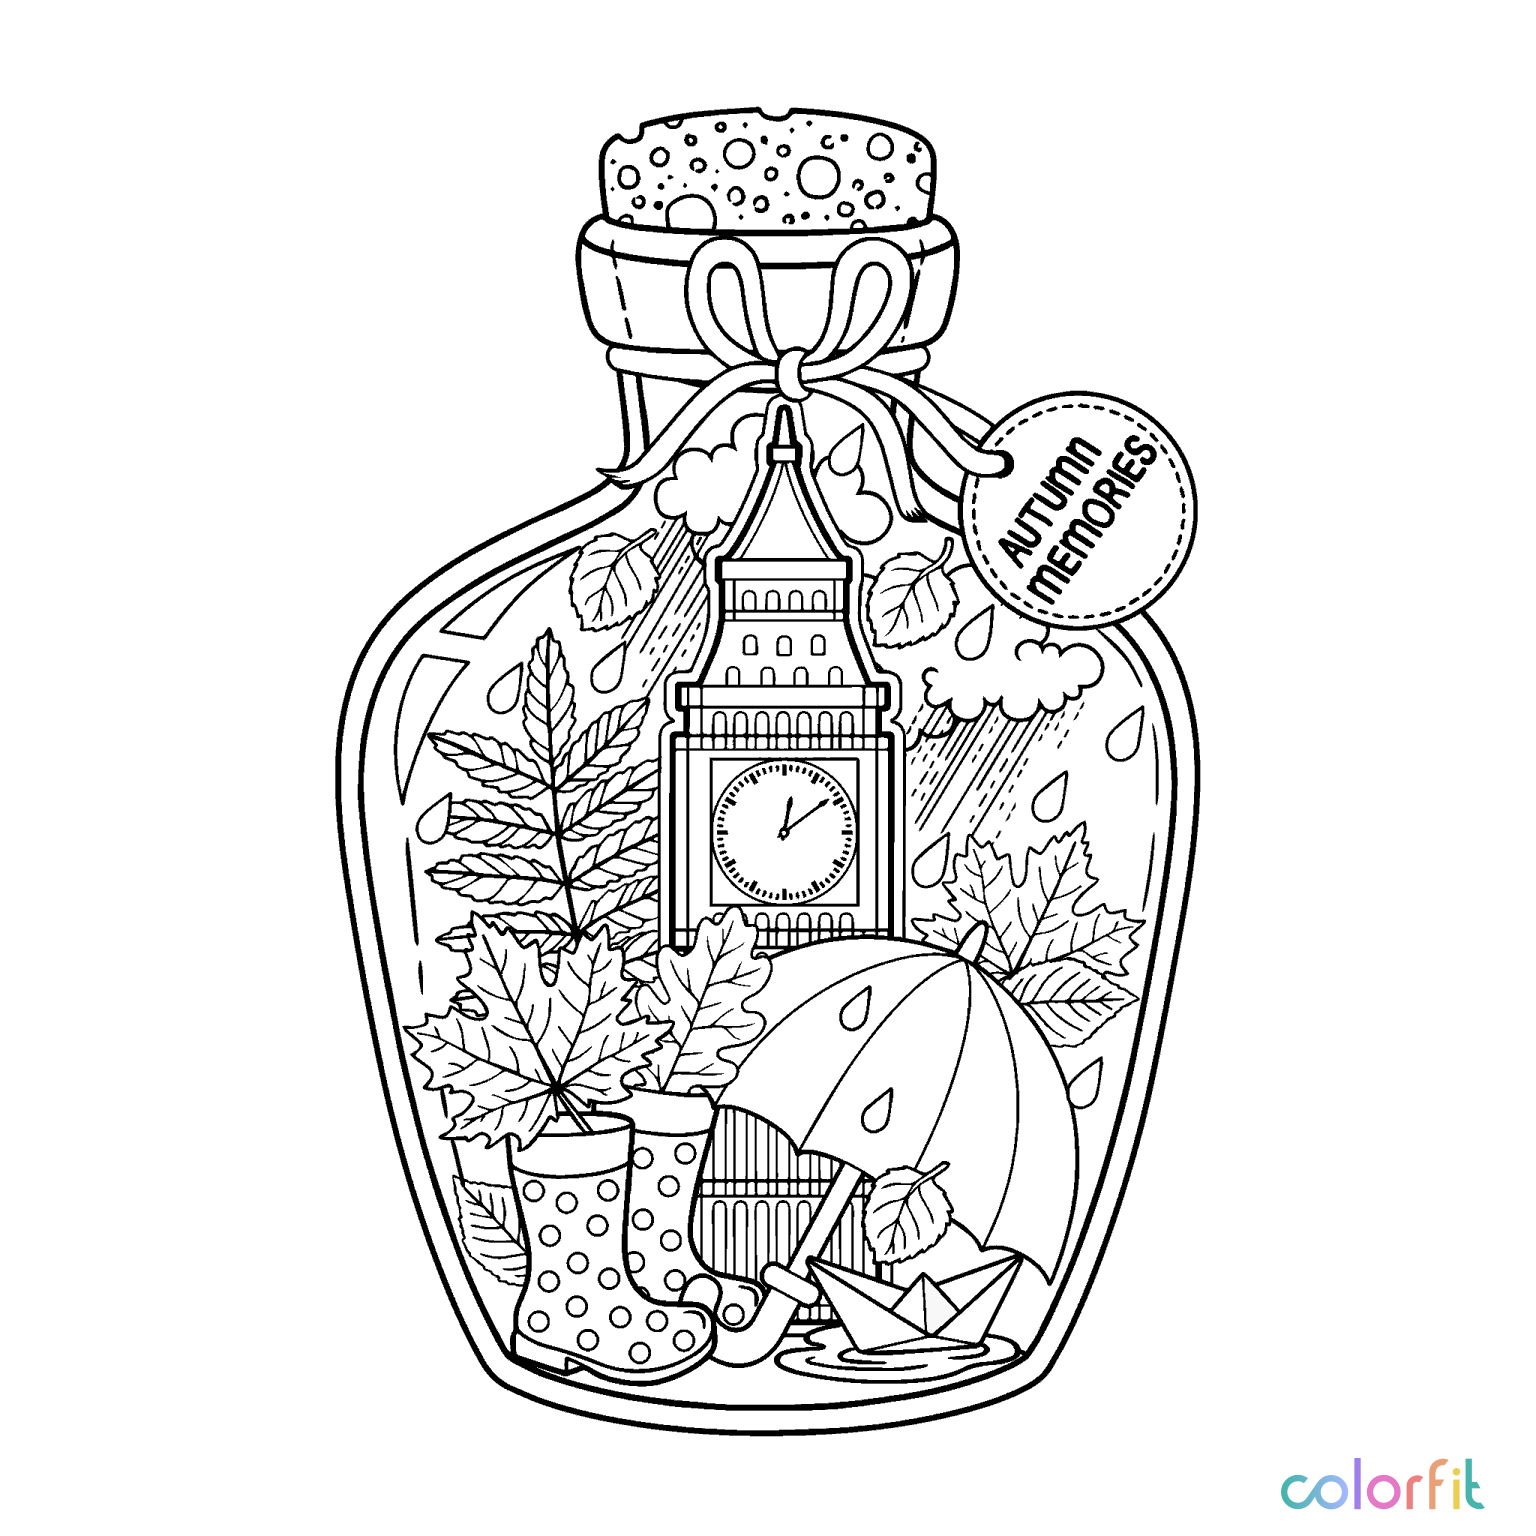 Embroiderybibleverses Coloring Books Coloring Pages Doodle Coloring